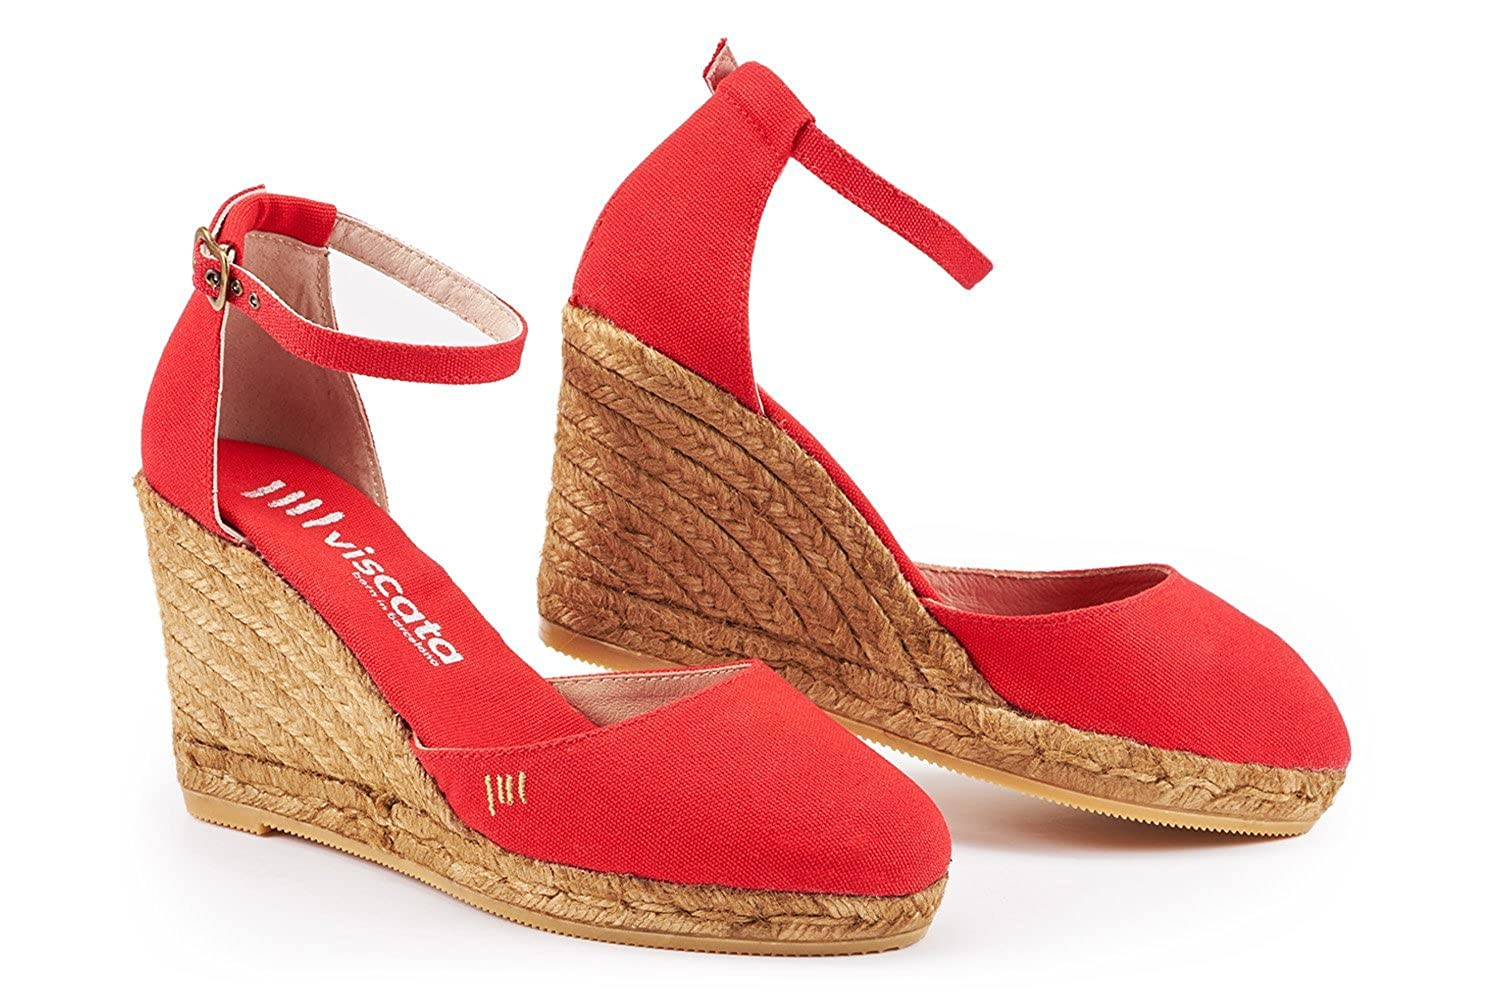 Viscata Red Canvas Wedge Espadrilles Heel Sandal - DeluxeAdultCostumes.com